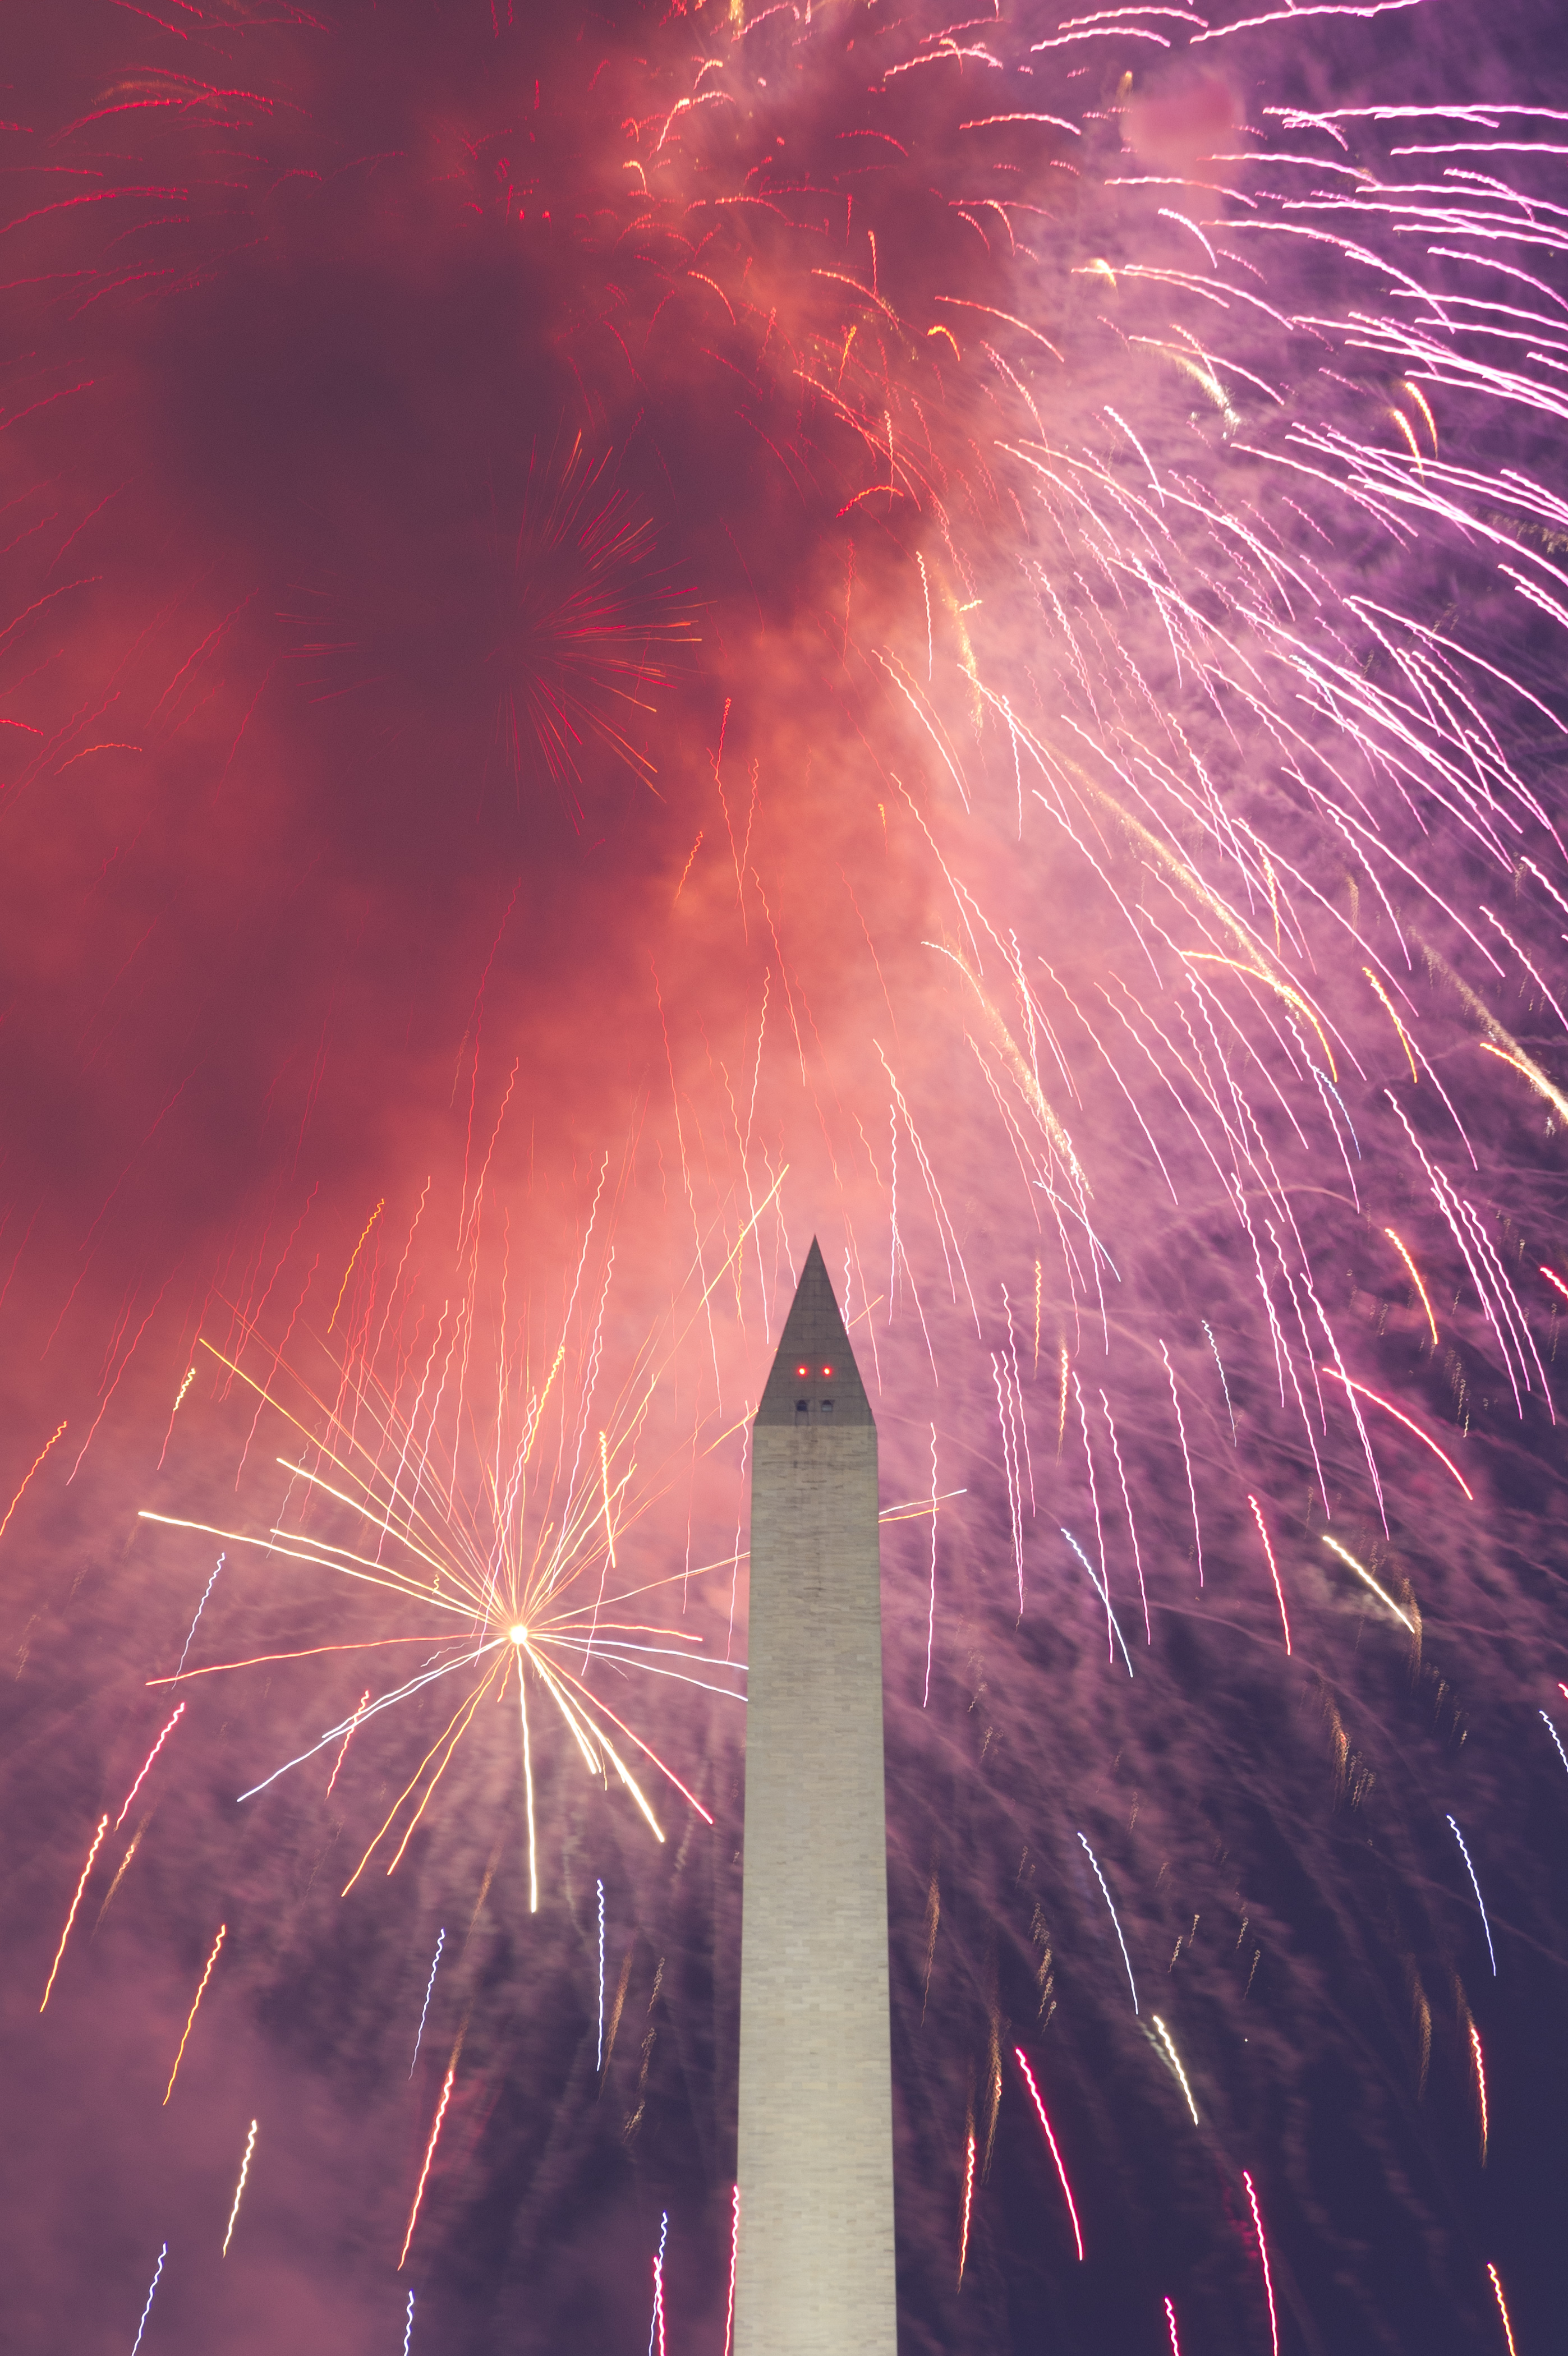 Fireworks over the National Mall on July 4, 2011. Photo by Eric Connolly.